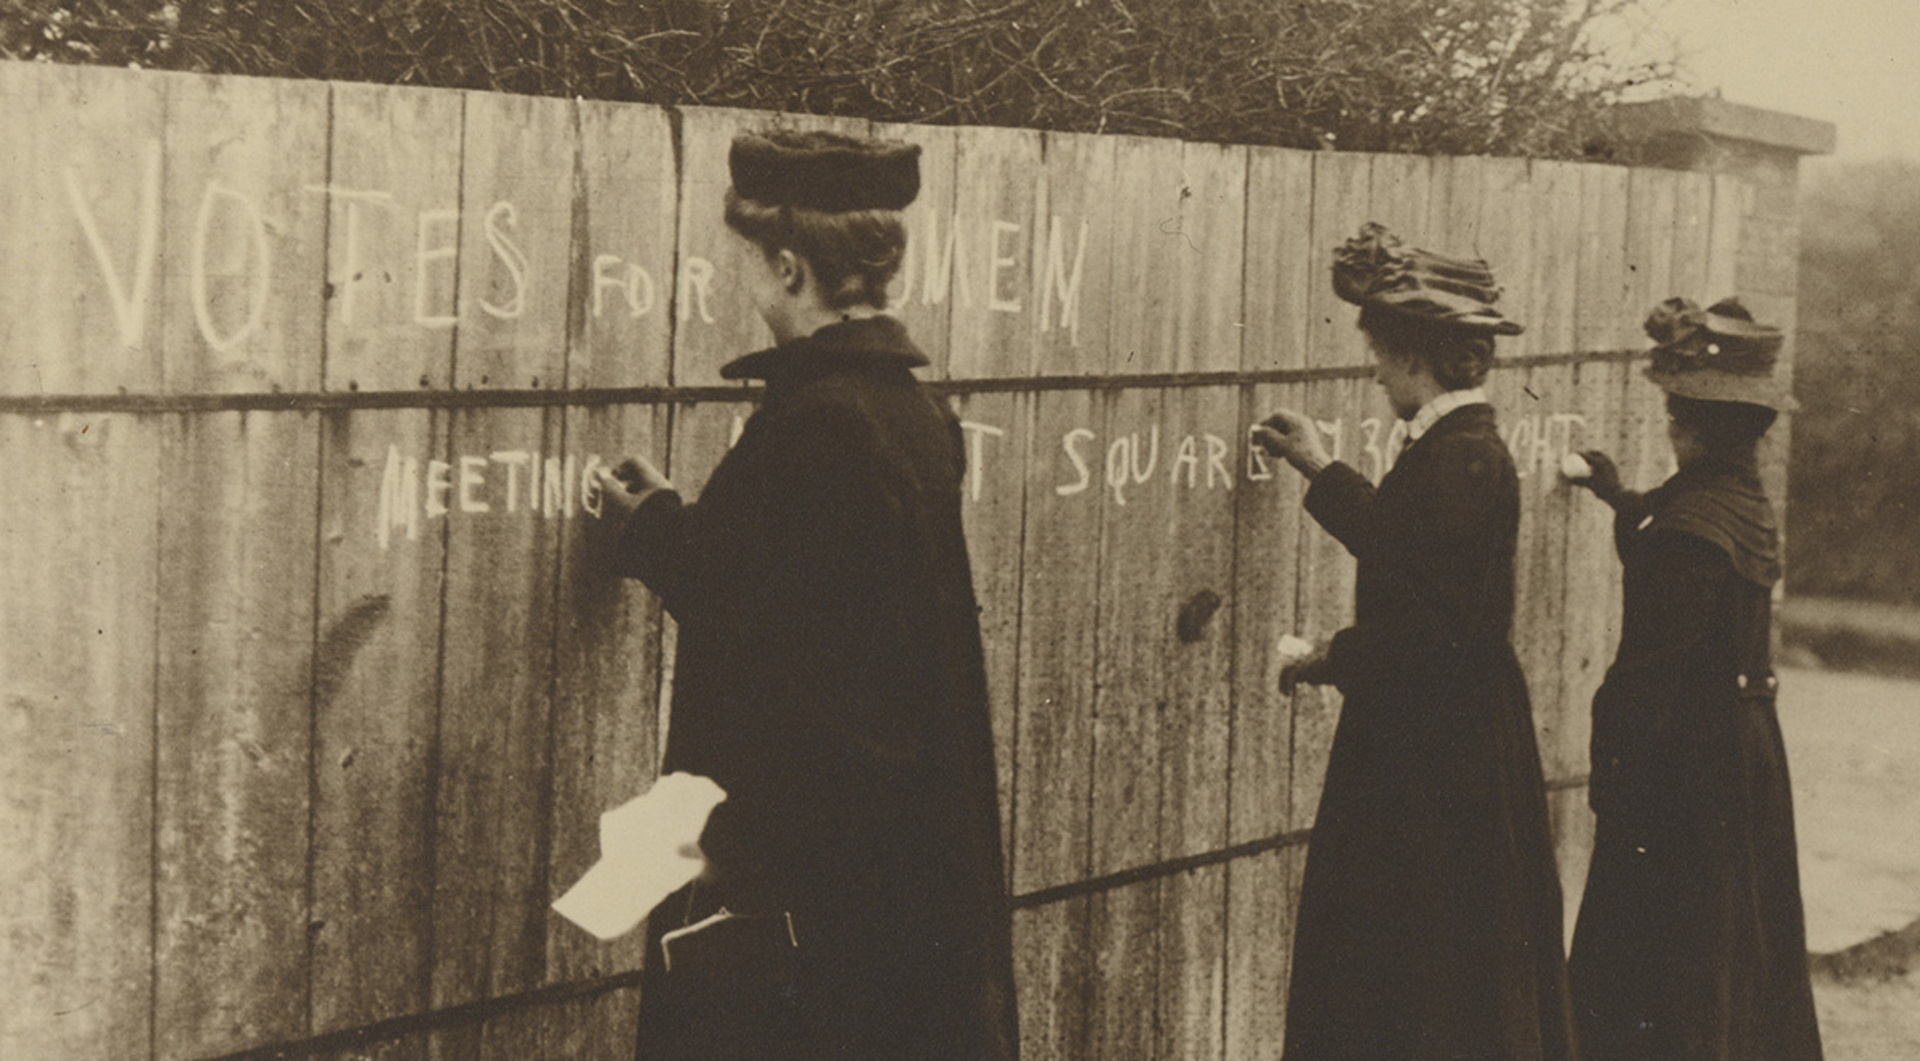 Suffragists writing on fences